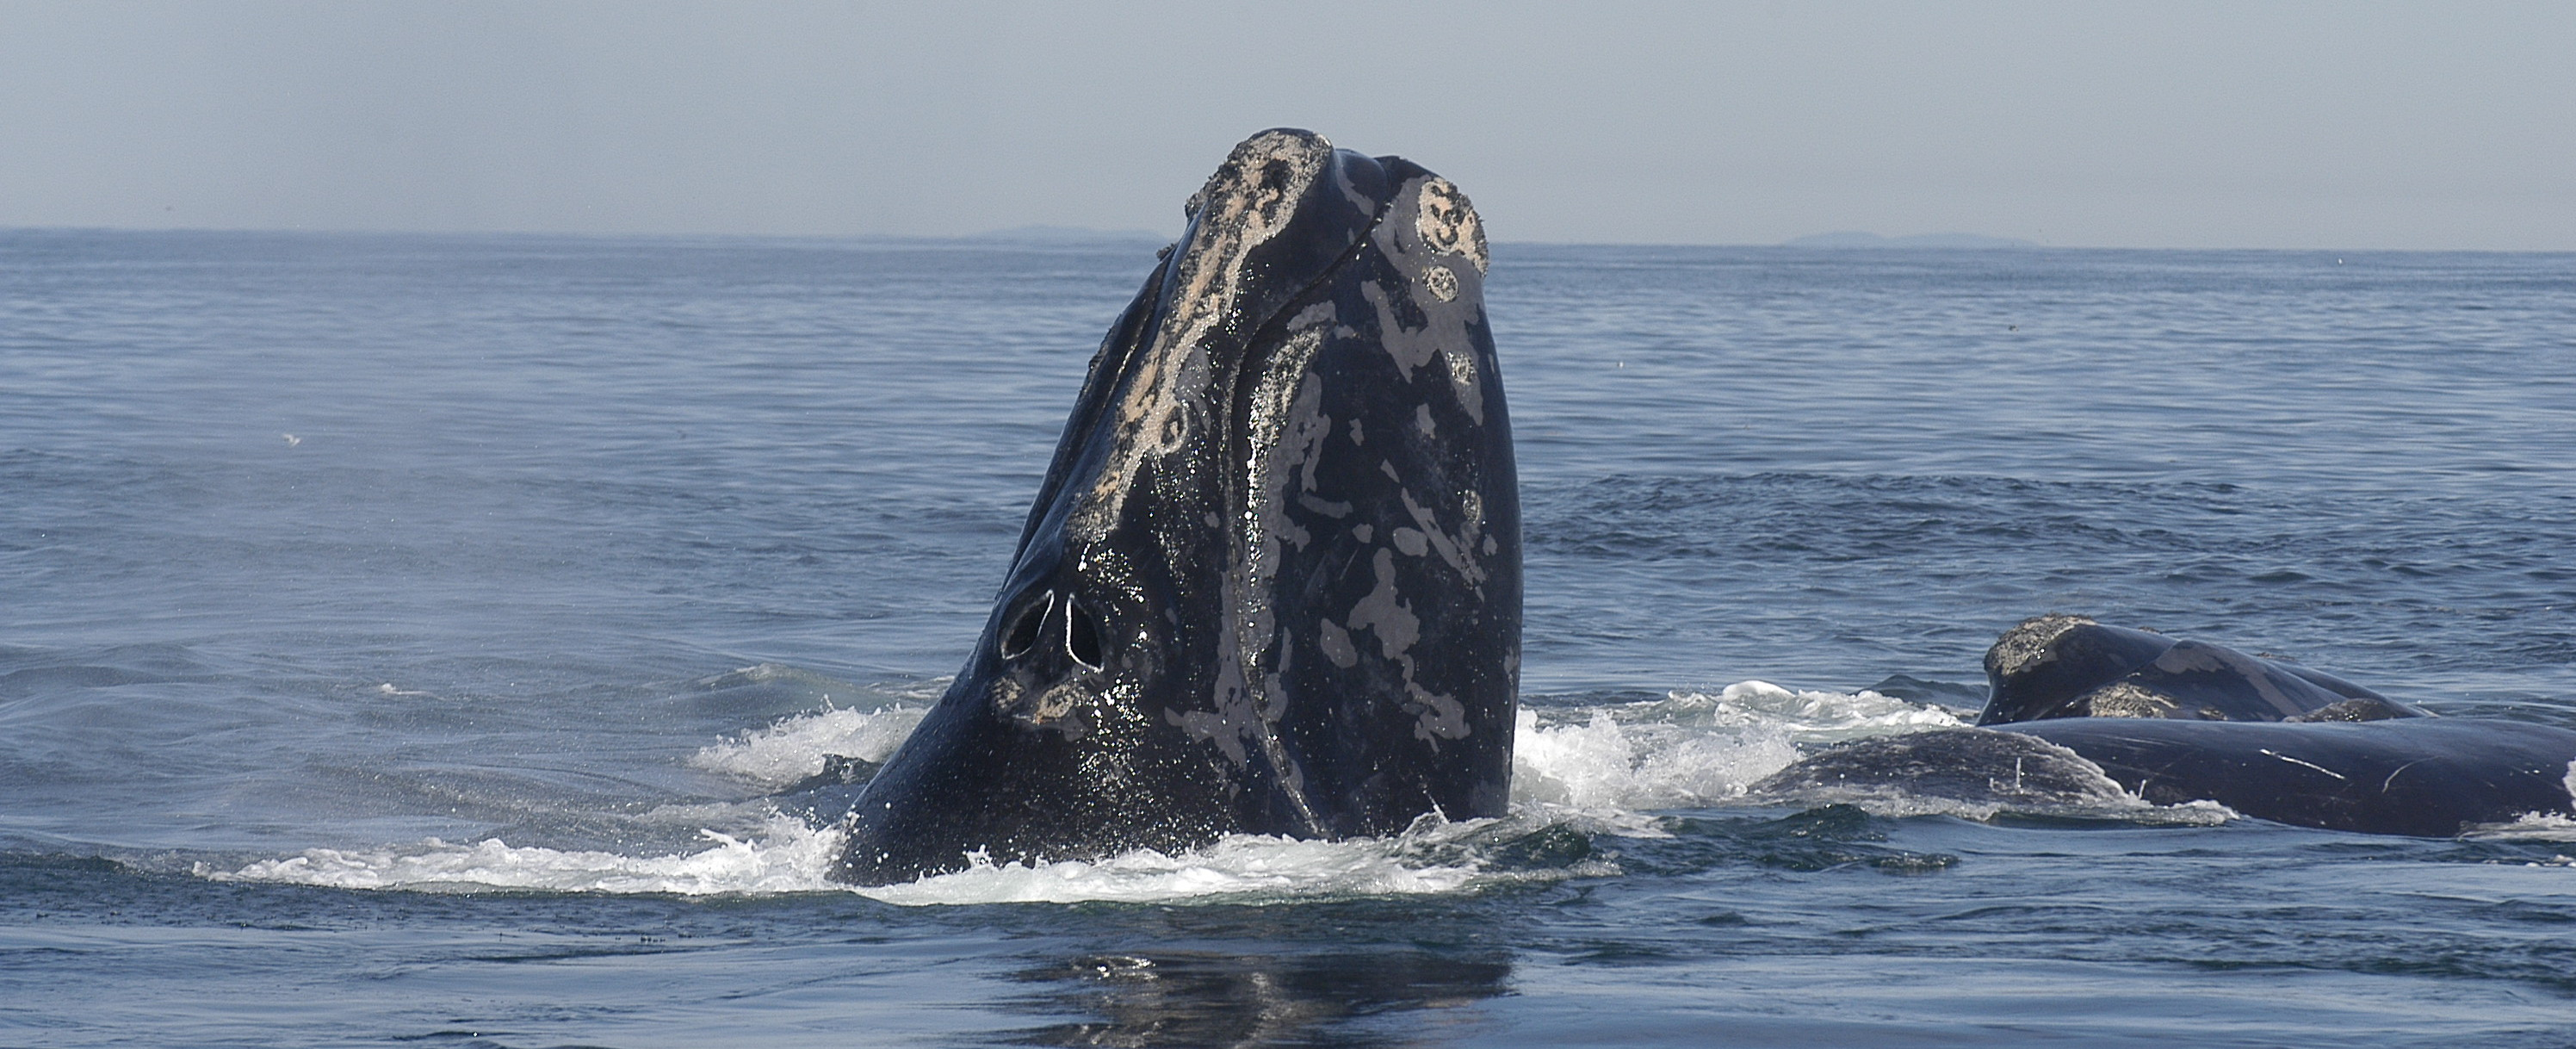 Federal judge rules government failed to protect endangered whales in favor of lobster fishing industry